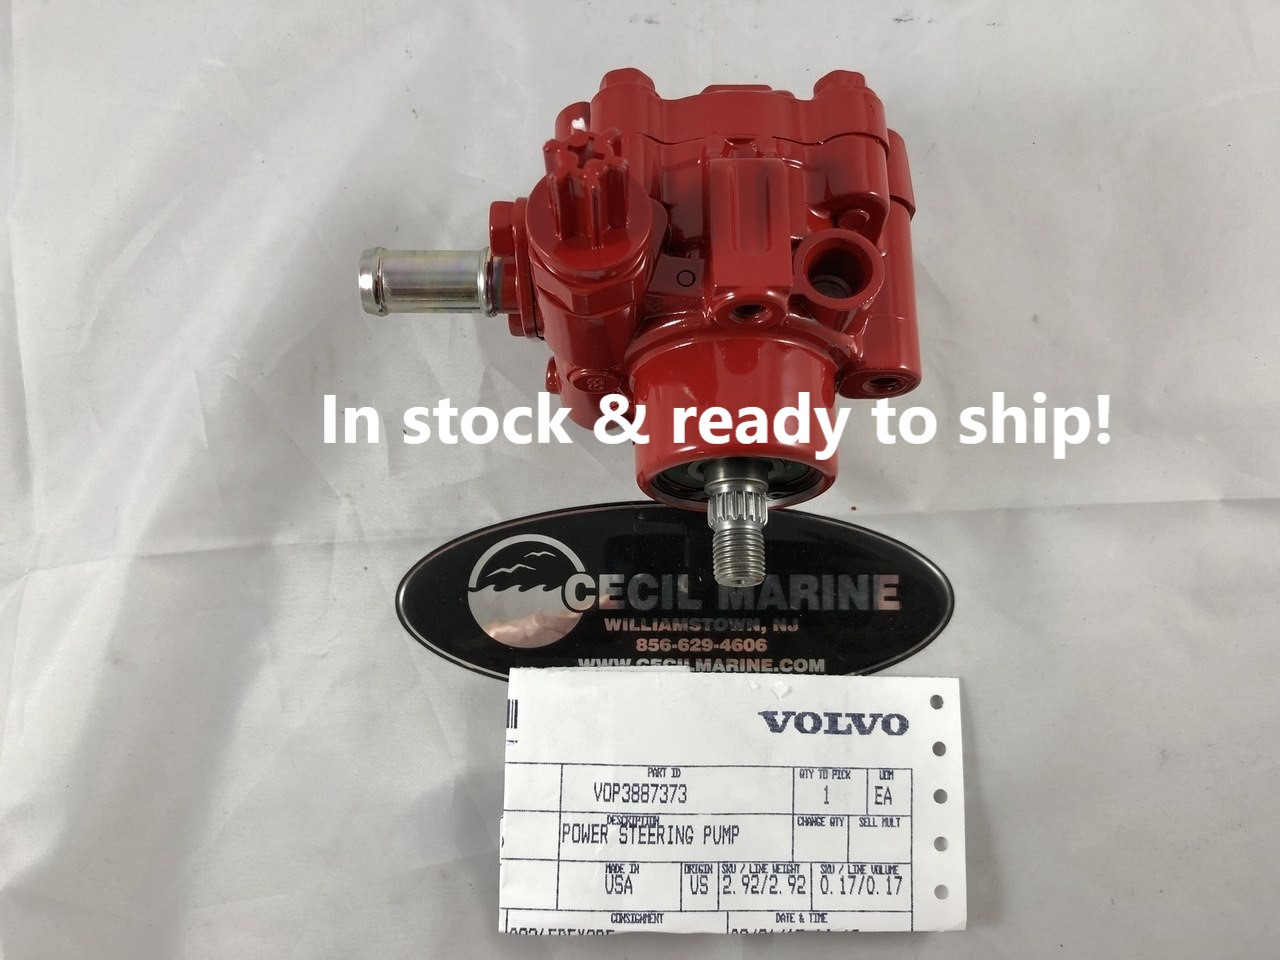 hight resolution of  439 47 genuine volvo power steering pump 3887373 in stock ready to ship